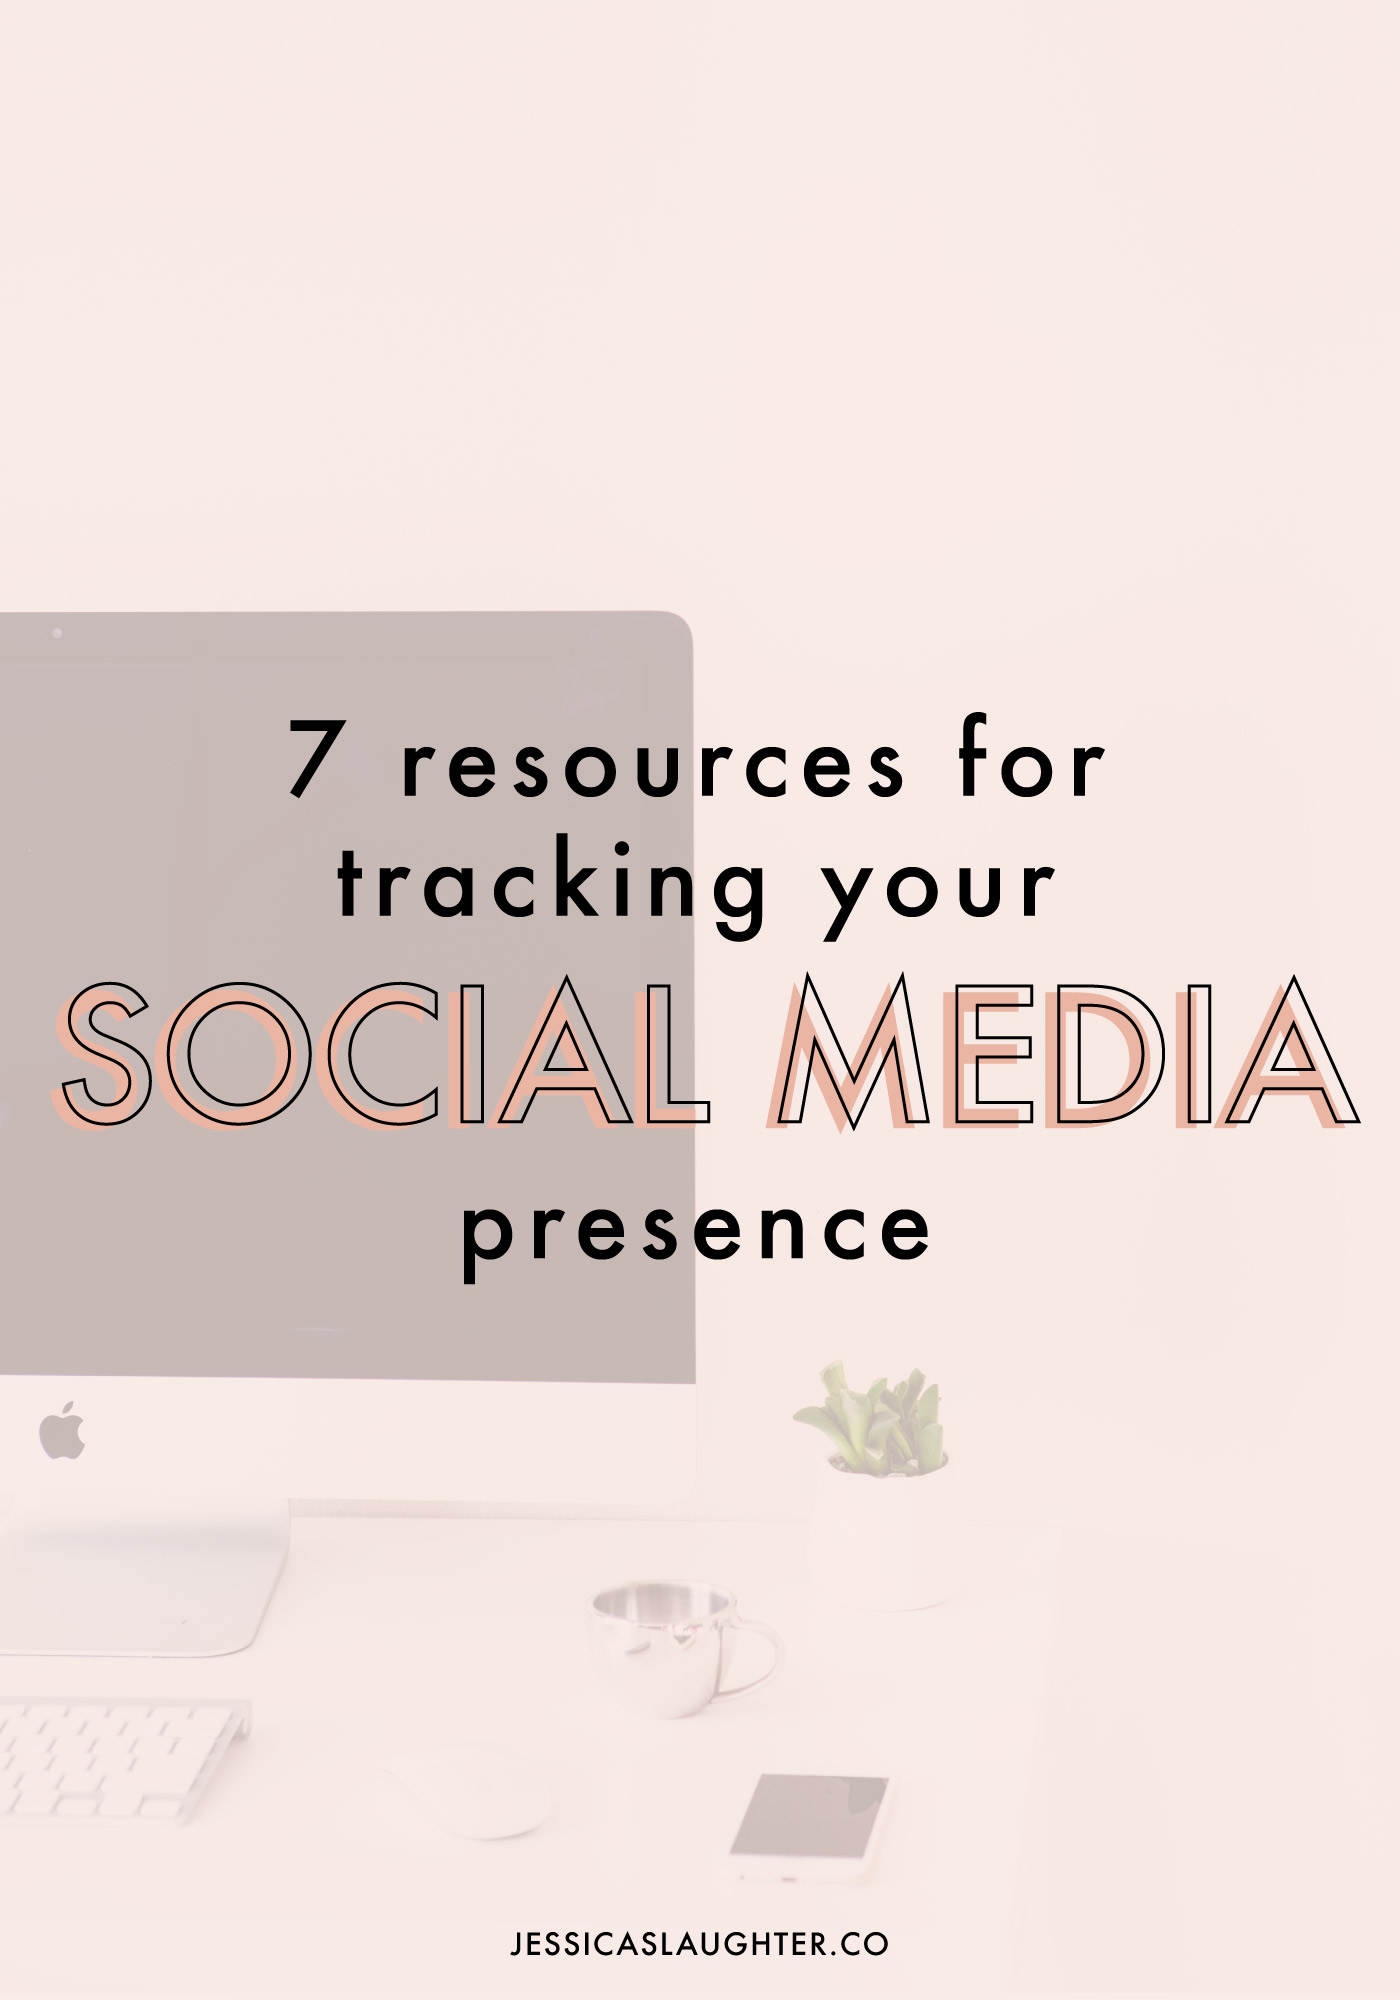 7 Resources For Tracking Your Social Media Presence